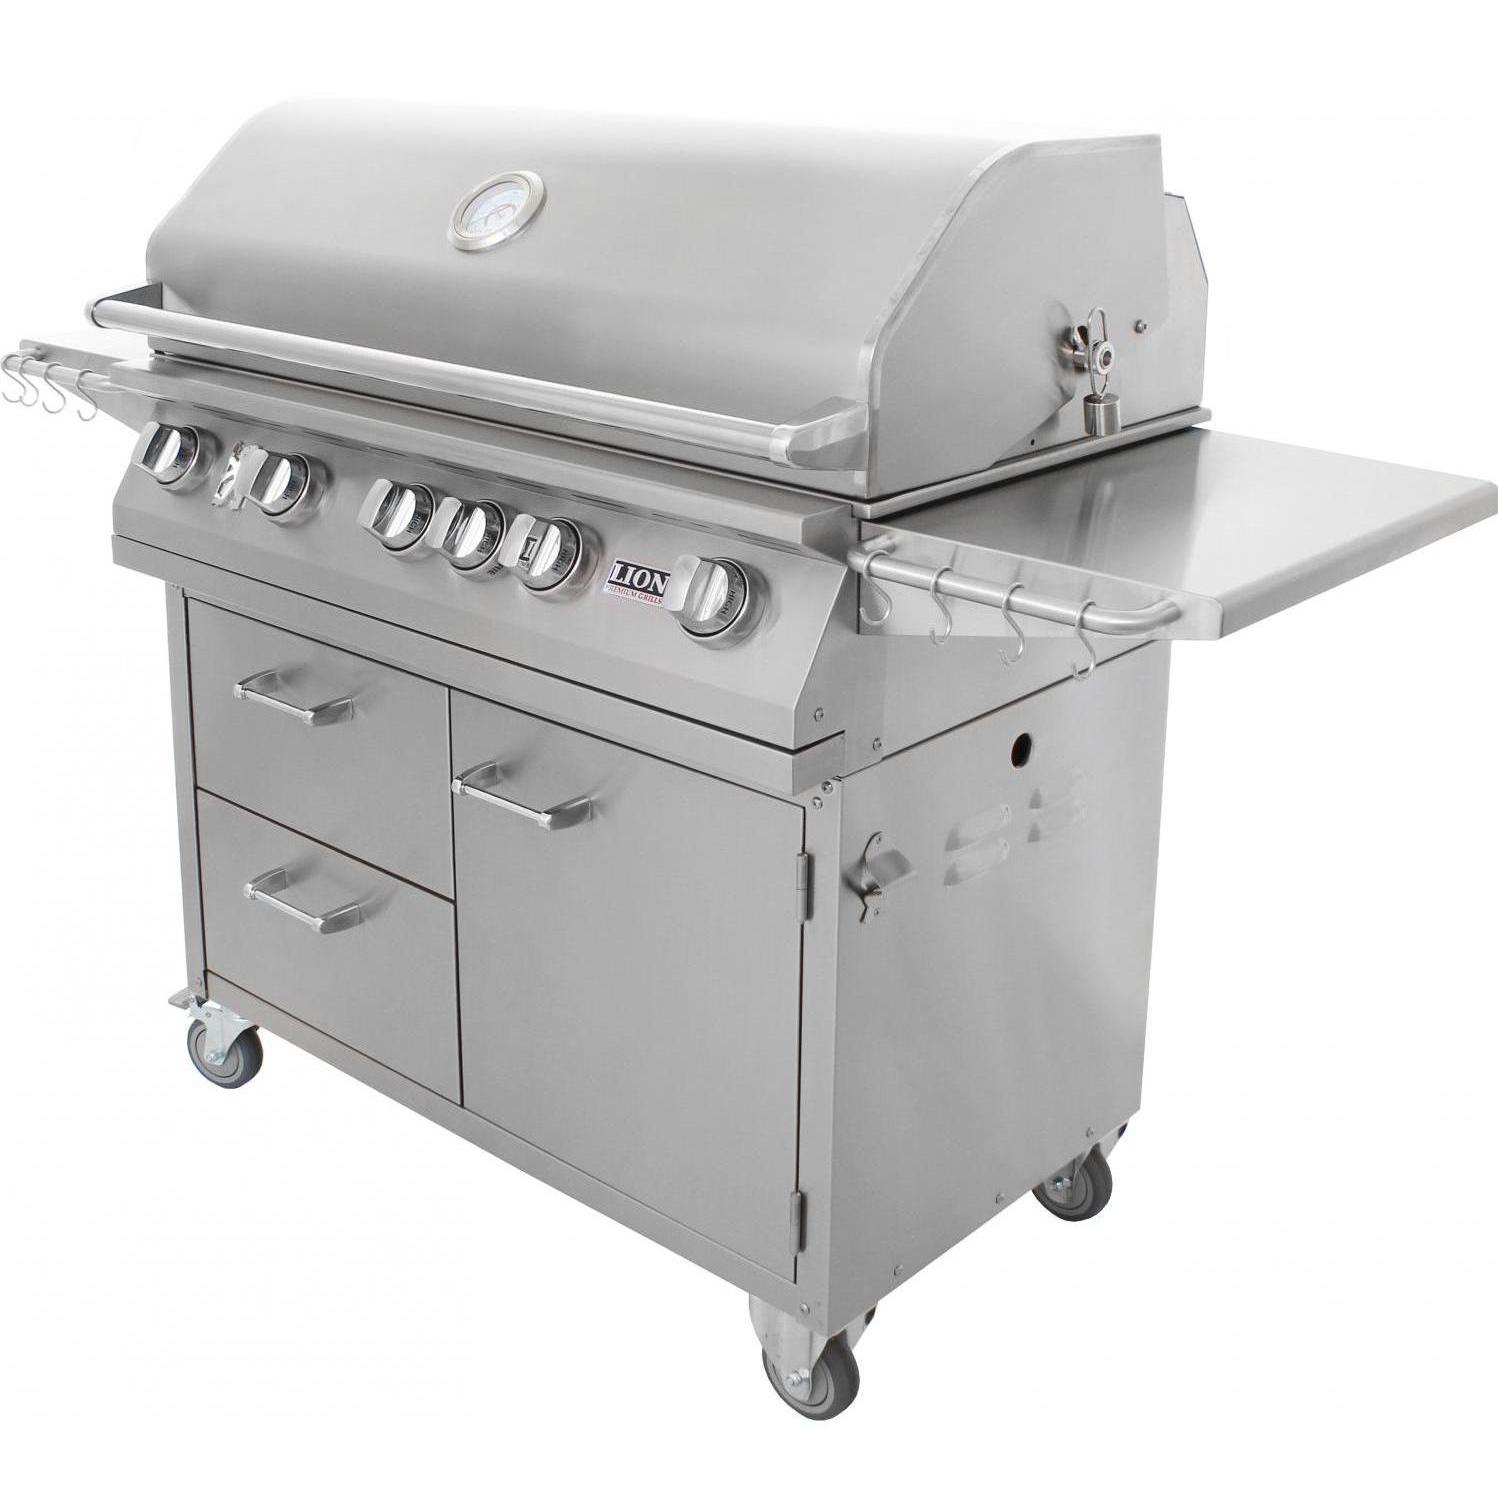 Lion inch gas grill l stainless steel